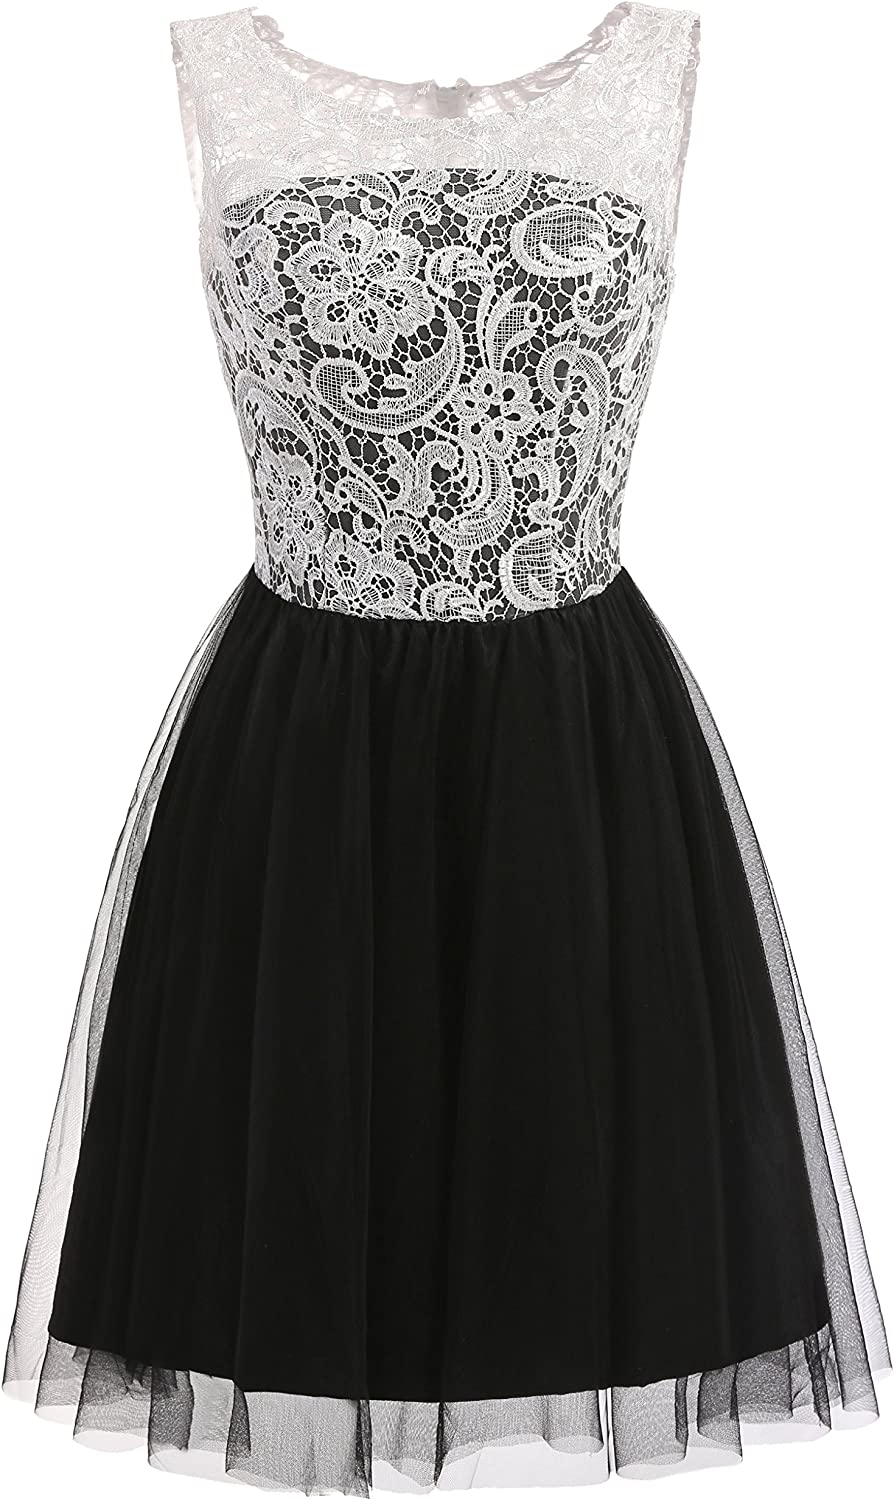 YSFS Women's Jewel Neck Mini Short Tulle Homecoming Party Dresses